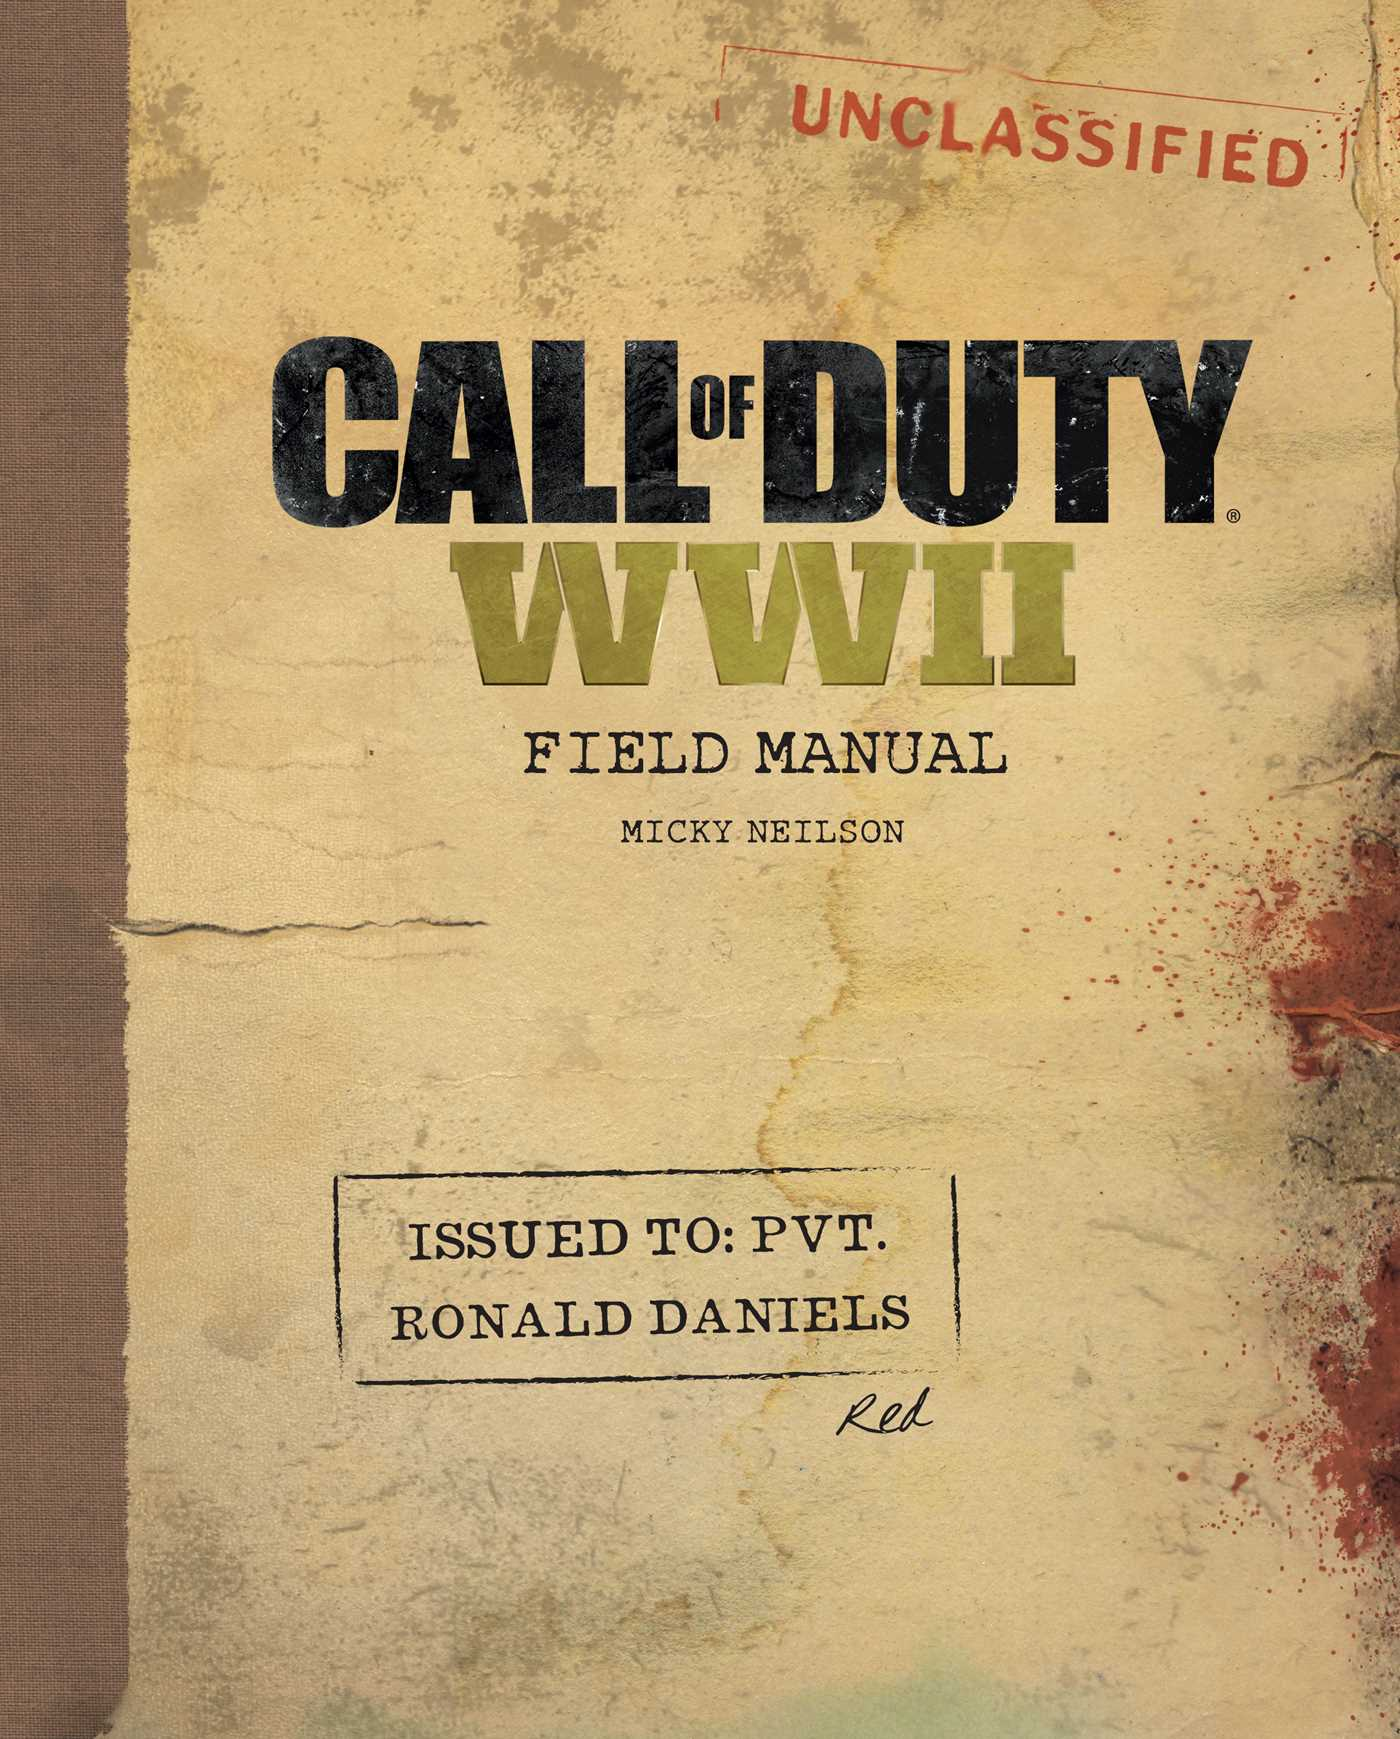 Call of duty wwii field manual 9781608879342 hr